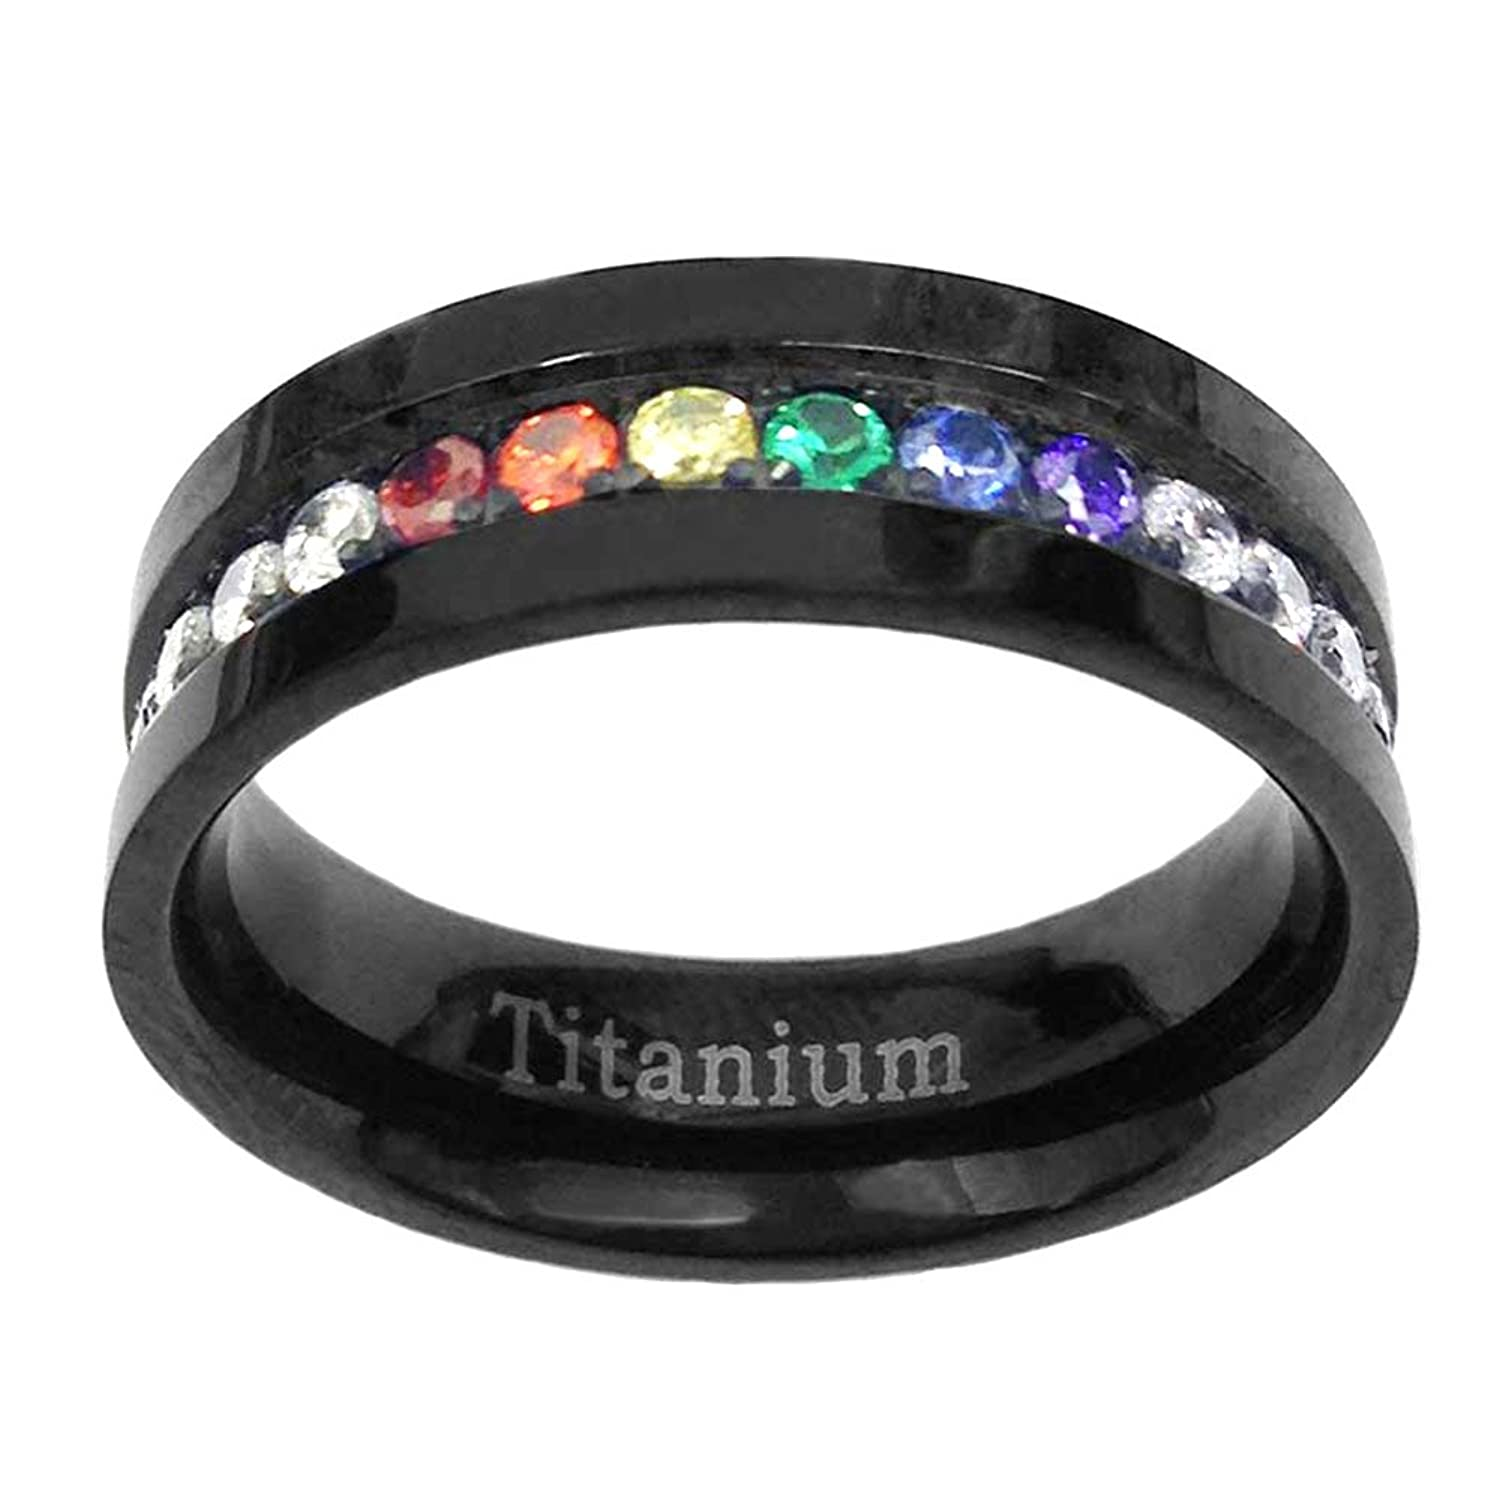 dreamy rainbow best brite inspired rings gay main lesbian gem amp black mini ring new of pride amazon wedding bottle